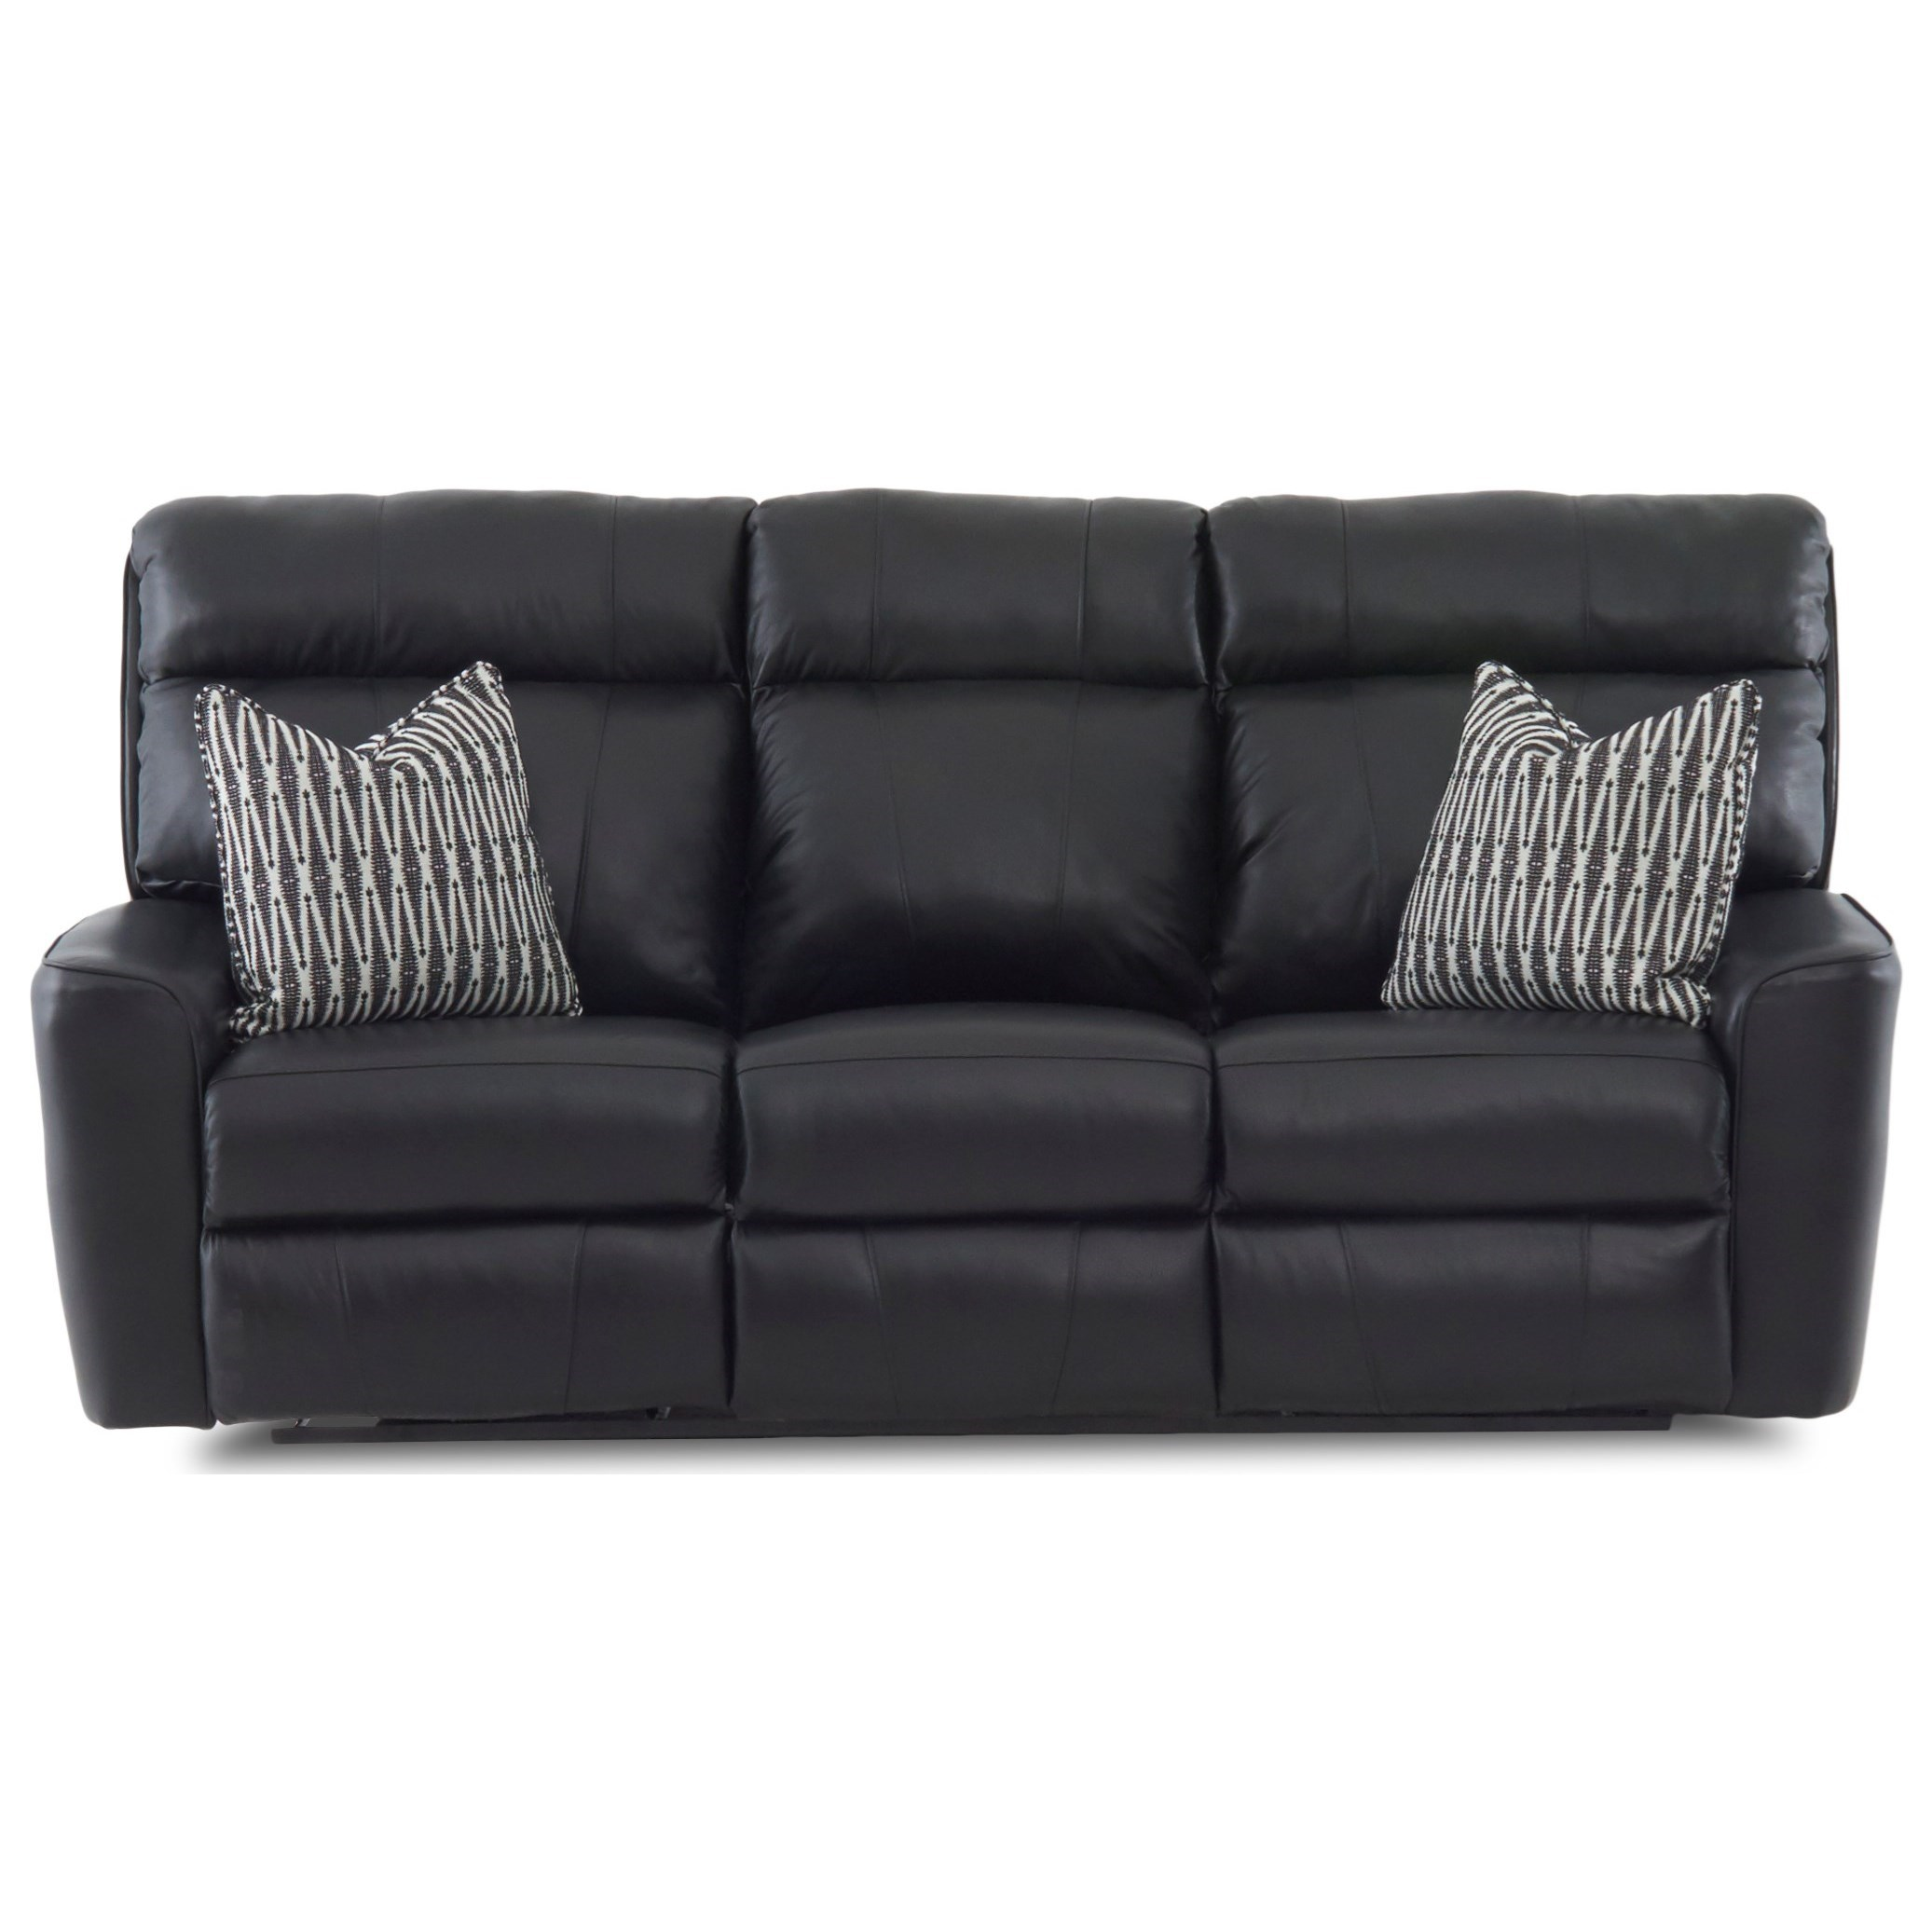 Casual Power Reclining Sofa with Pillows and USB Charging Ports